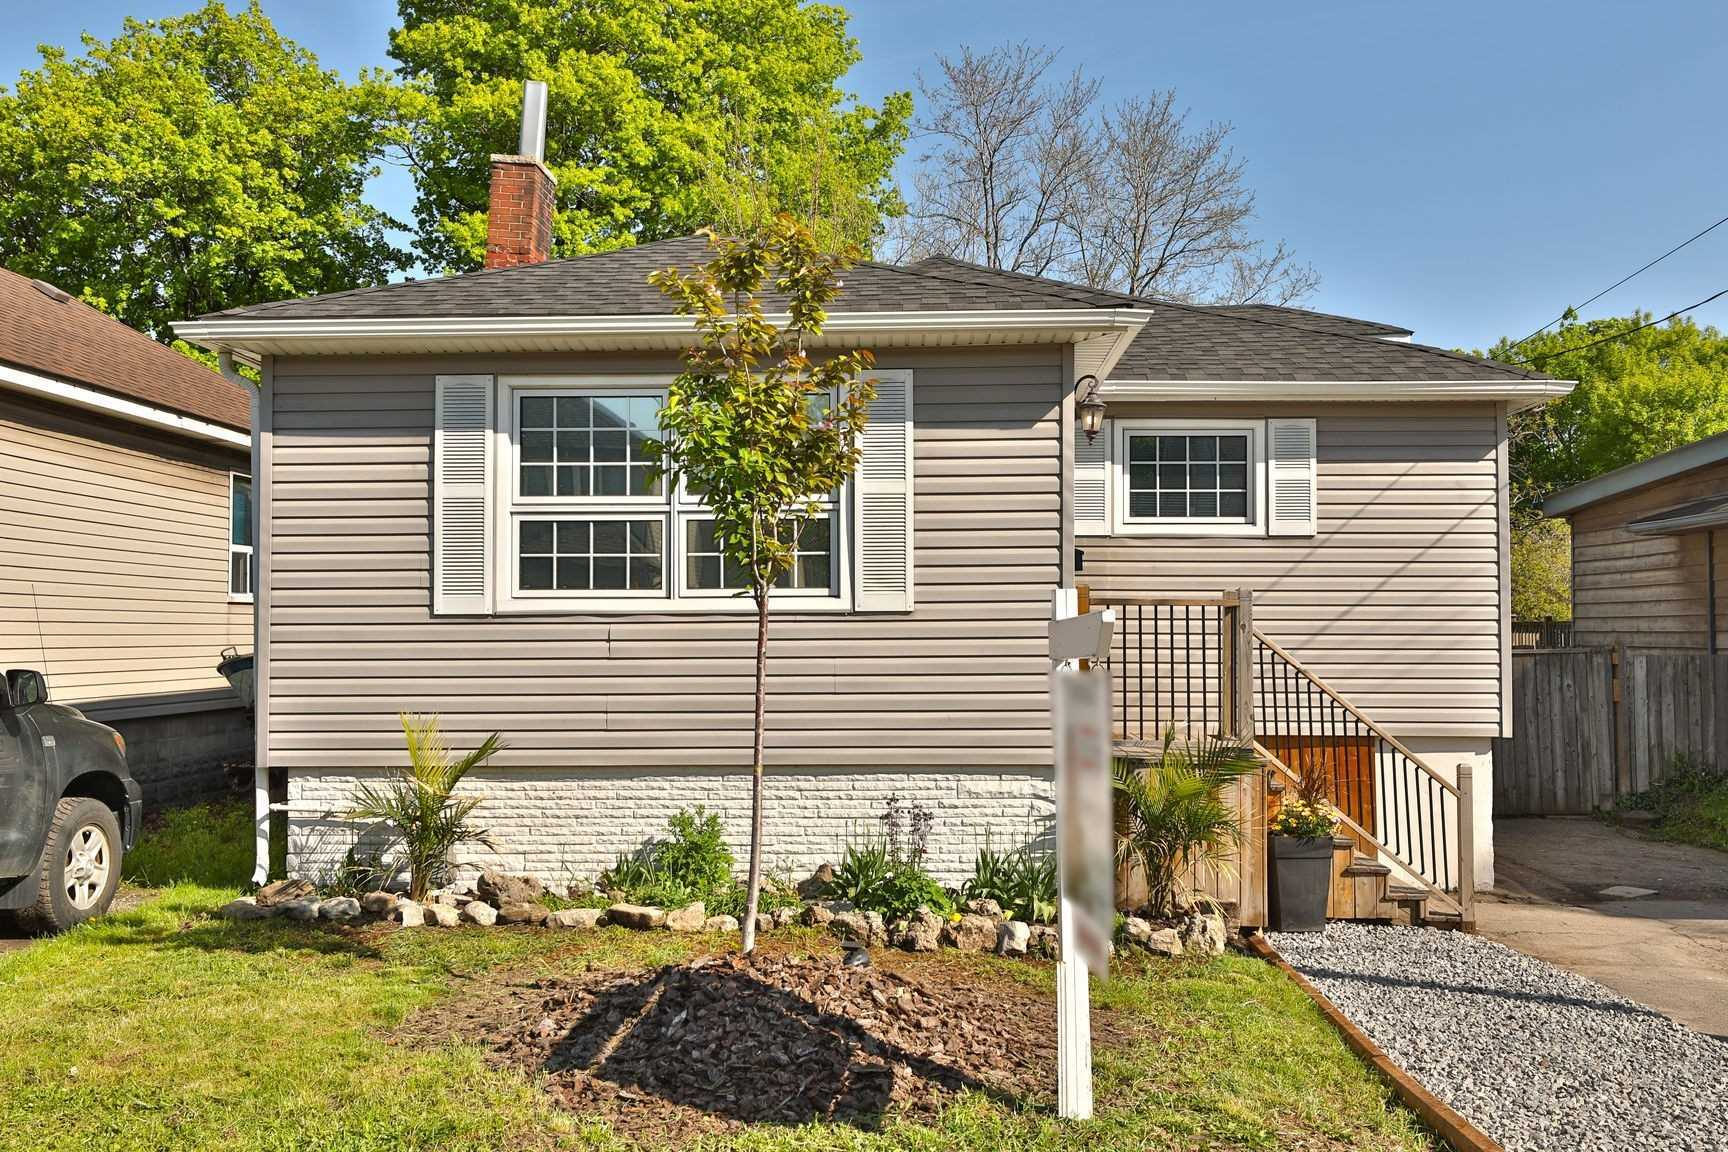 Trendy Hamilton Beach 3 Bed Renovated Open Concept Bungalow Complete With Ensuite, Main Floor Laundry, Stainless Appliances, Granite, Kitchen Island, Hardwood, Sunroom And More! Private Fenced-In Backyard W/ Mature Trees, Awaits Your Need To Relax After A Long Day Of Walking Along The Beach, Playing In The Sand Or Floating In The Lake! Easy Access To Hwy, Go, Burlington, & Over 12Km Long Waterfront Trail! Don't Pay Burlington Prices, But Enjoy The Proximity!